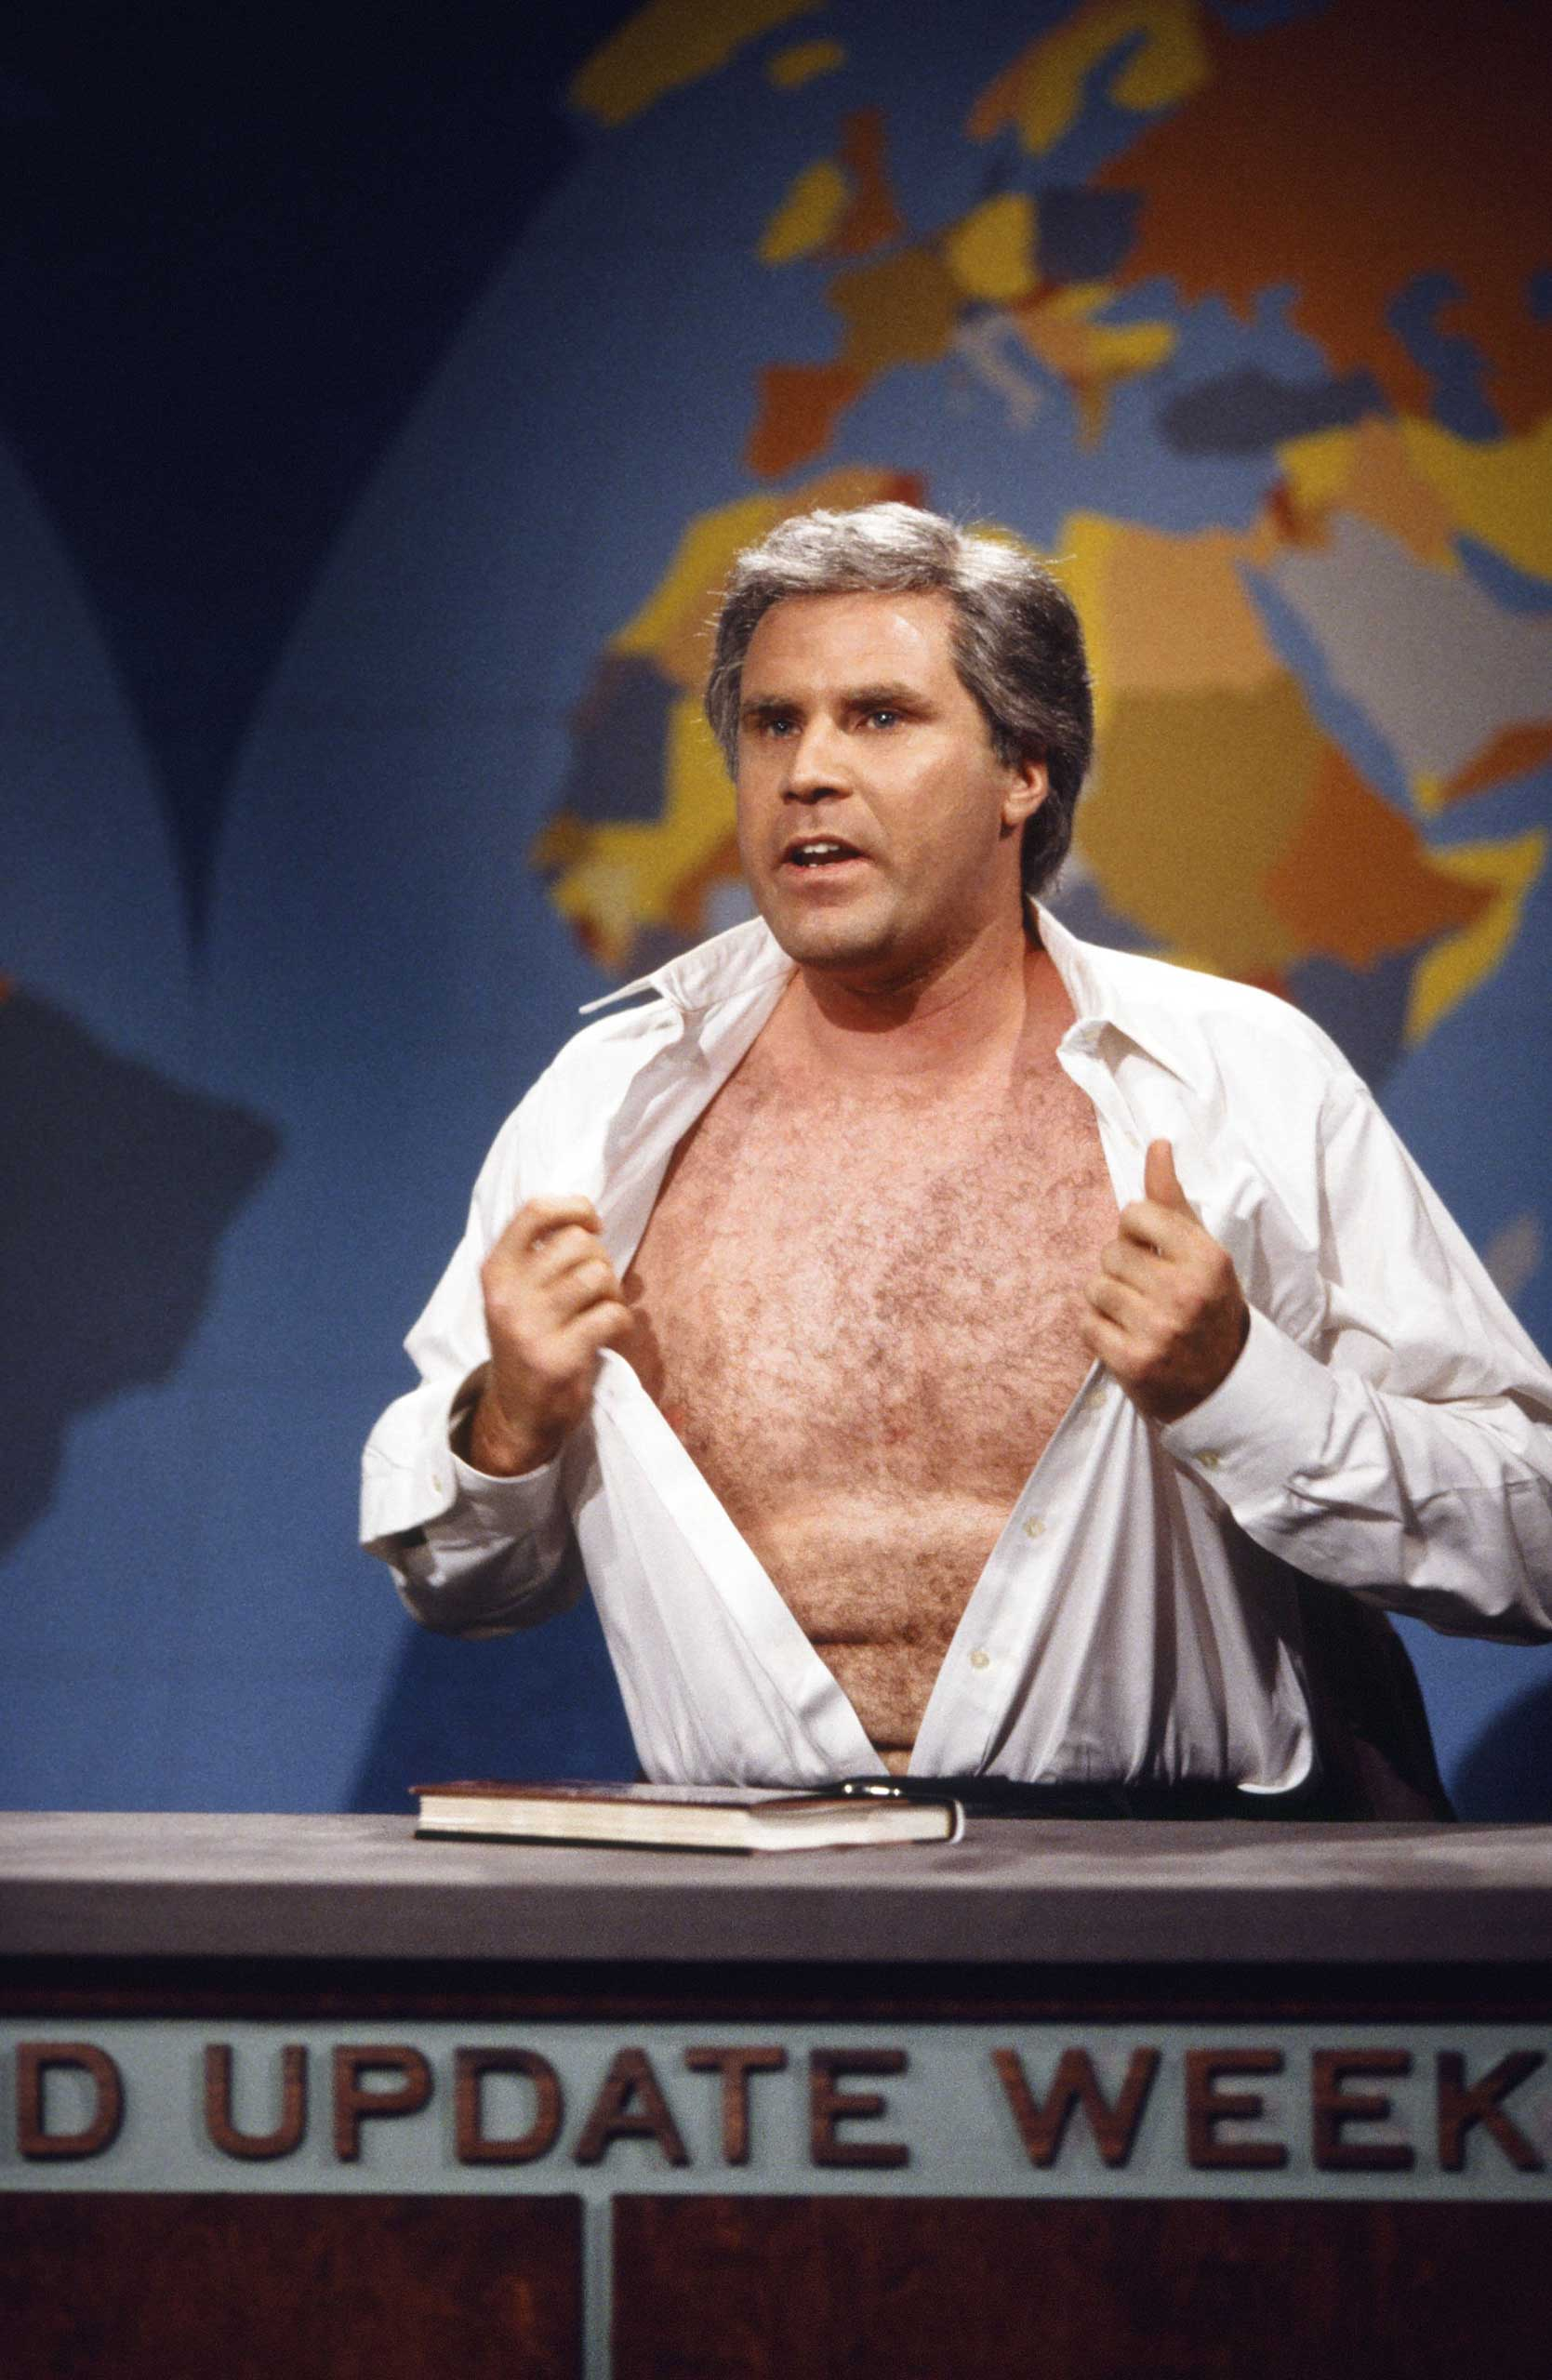 Will Ferrell as George W. Bush during the 'Weekend Update' skit on Nov. 20, 1999.